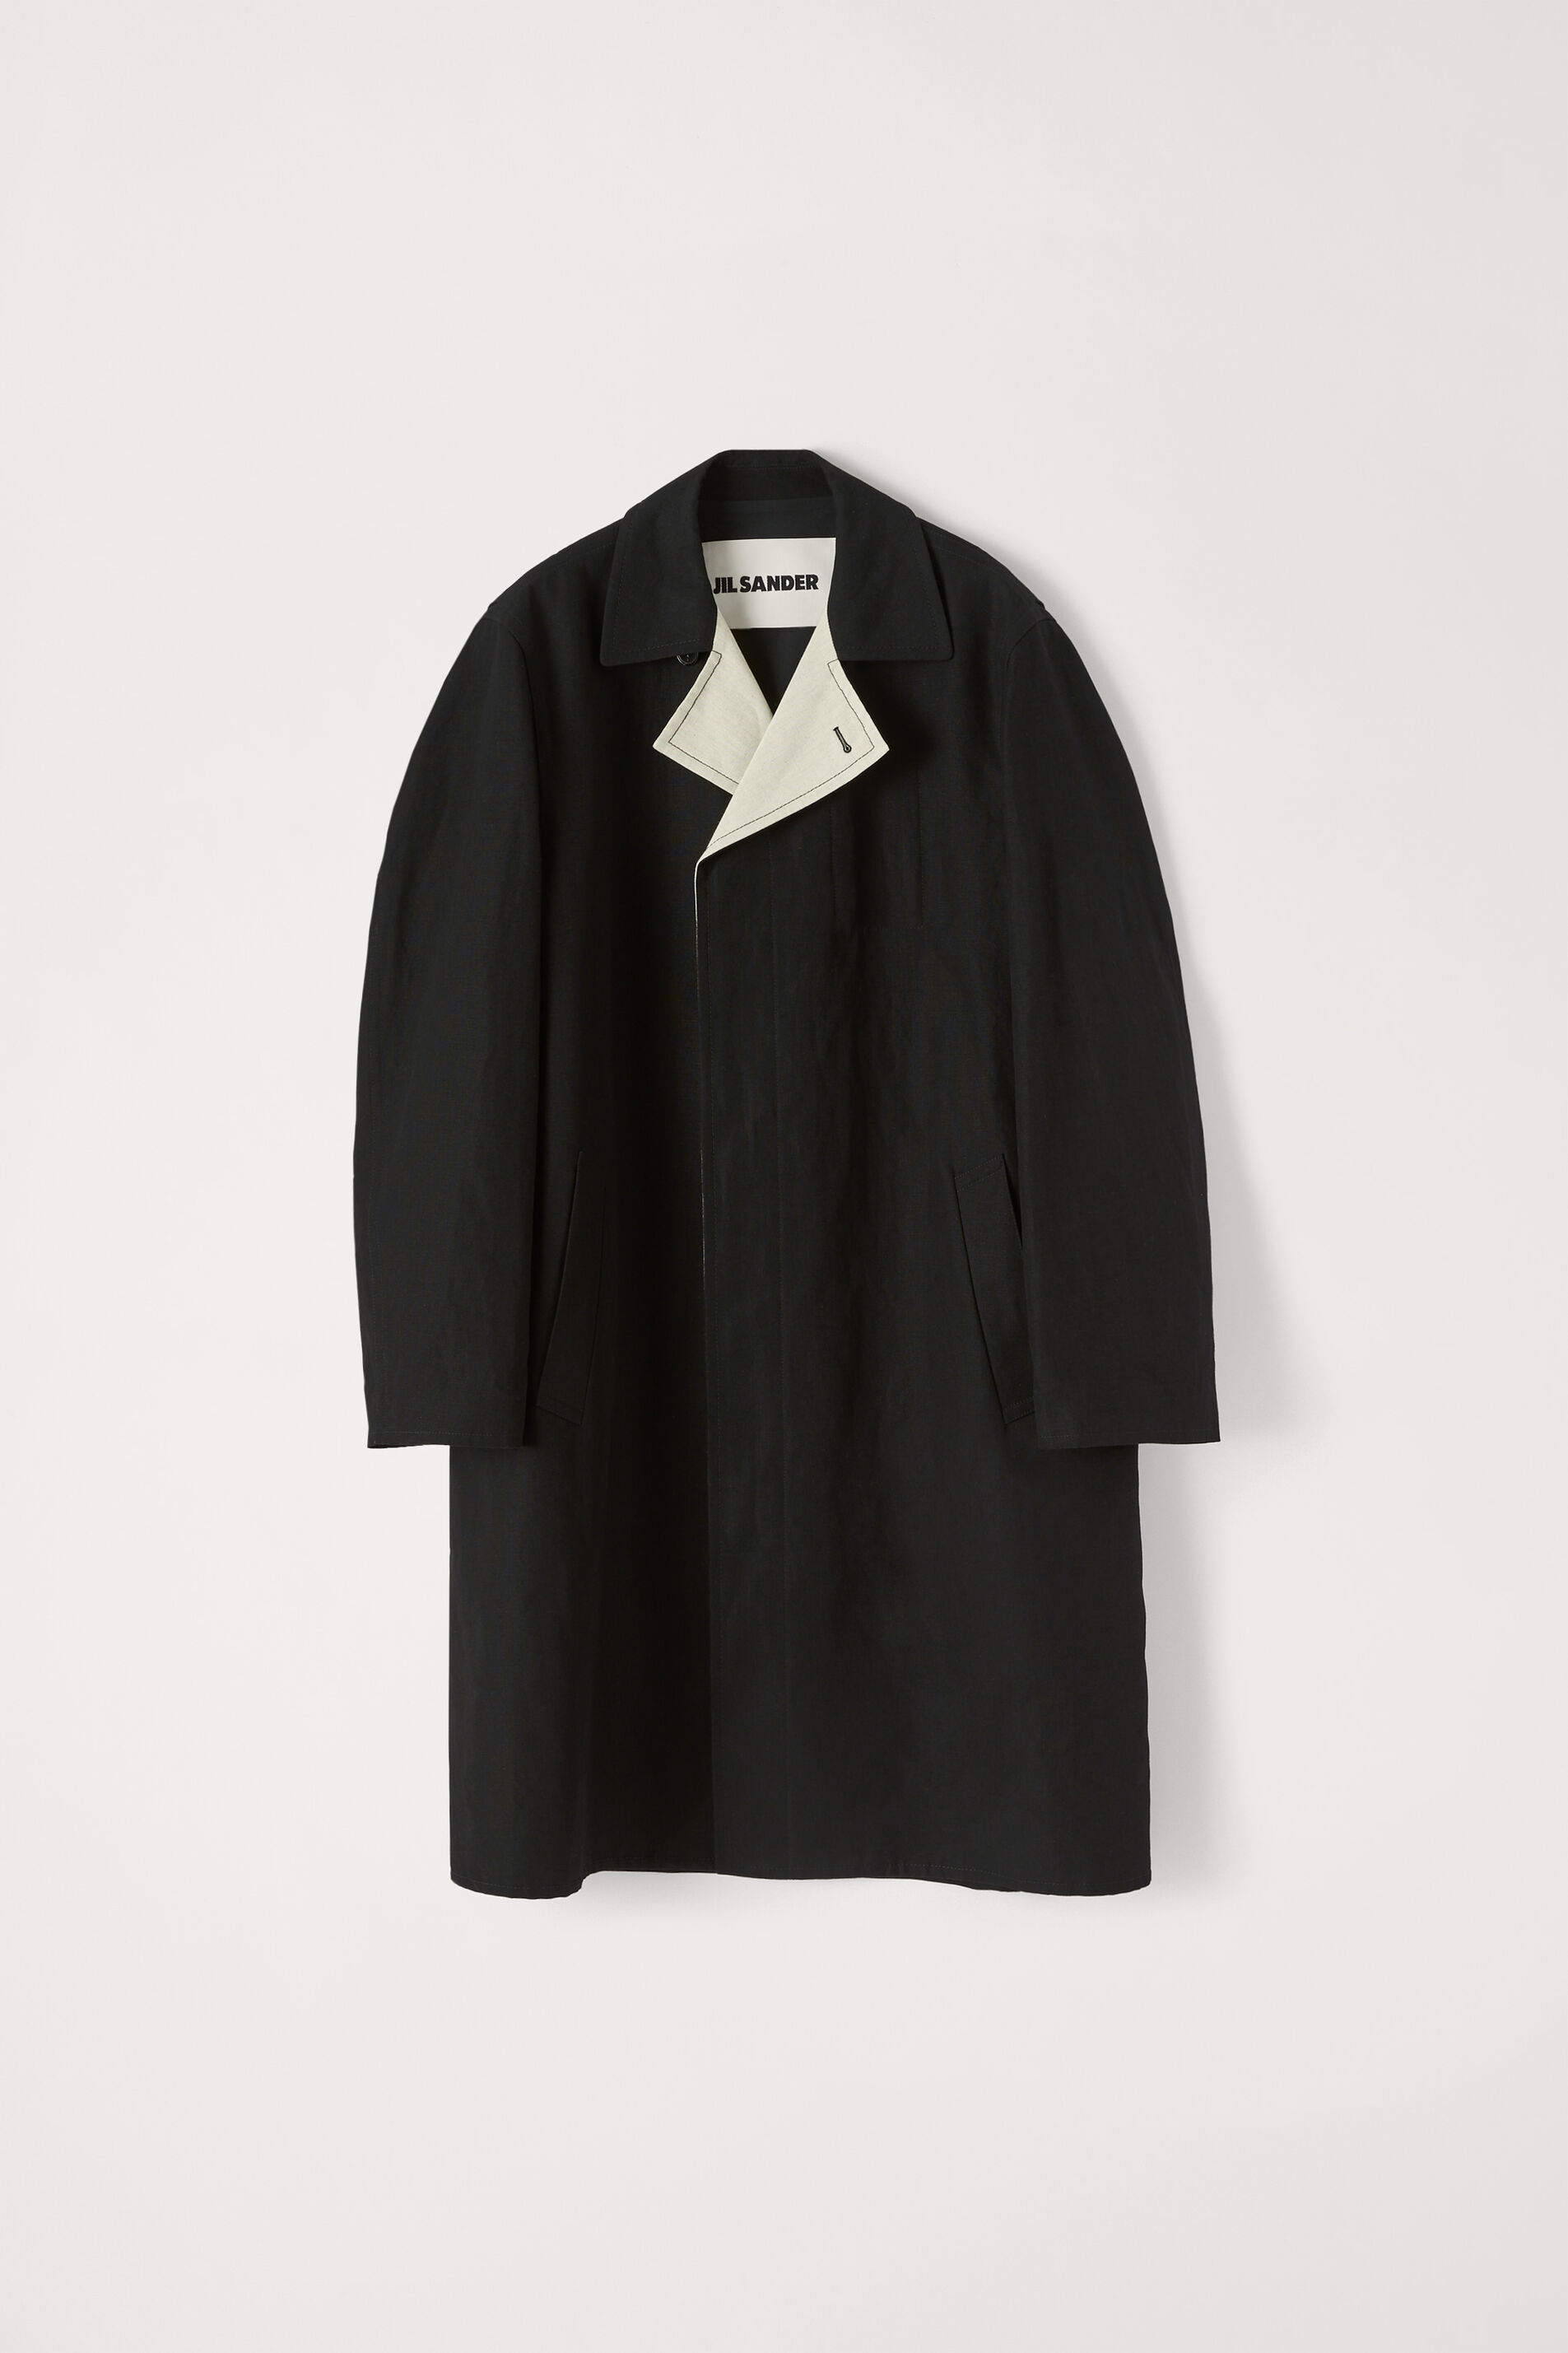 Coat, black, large